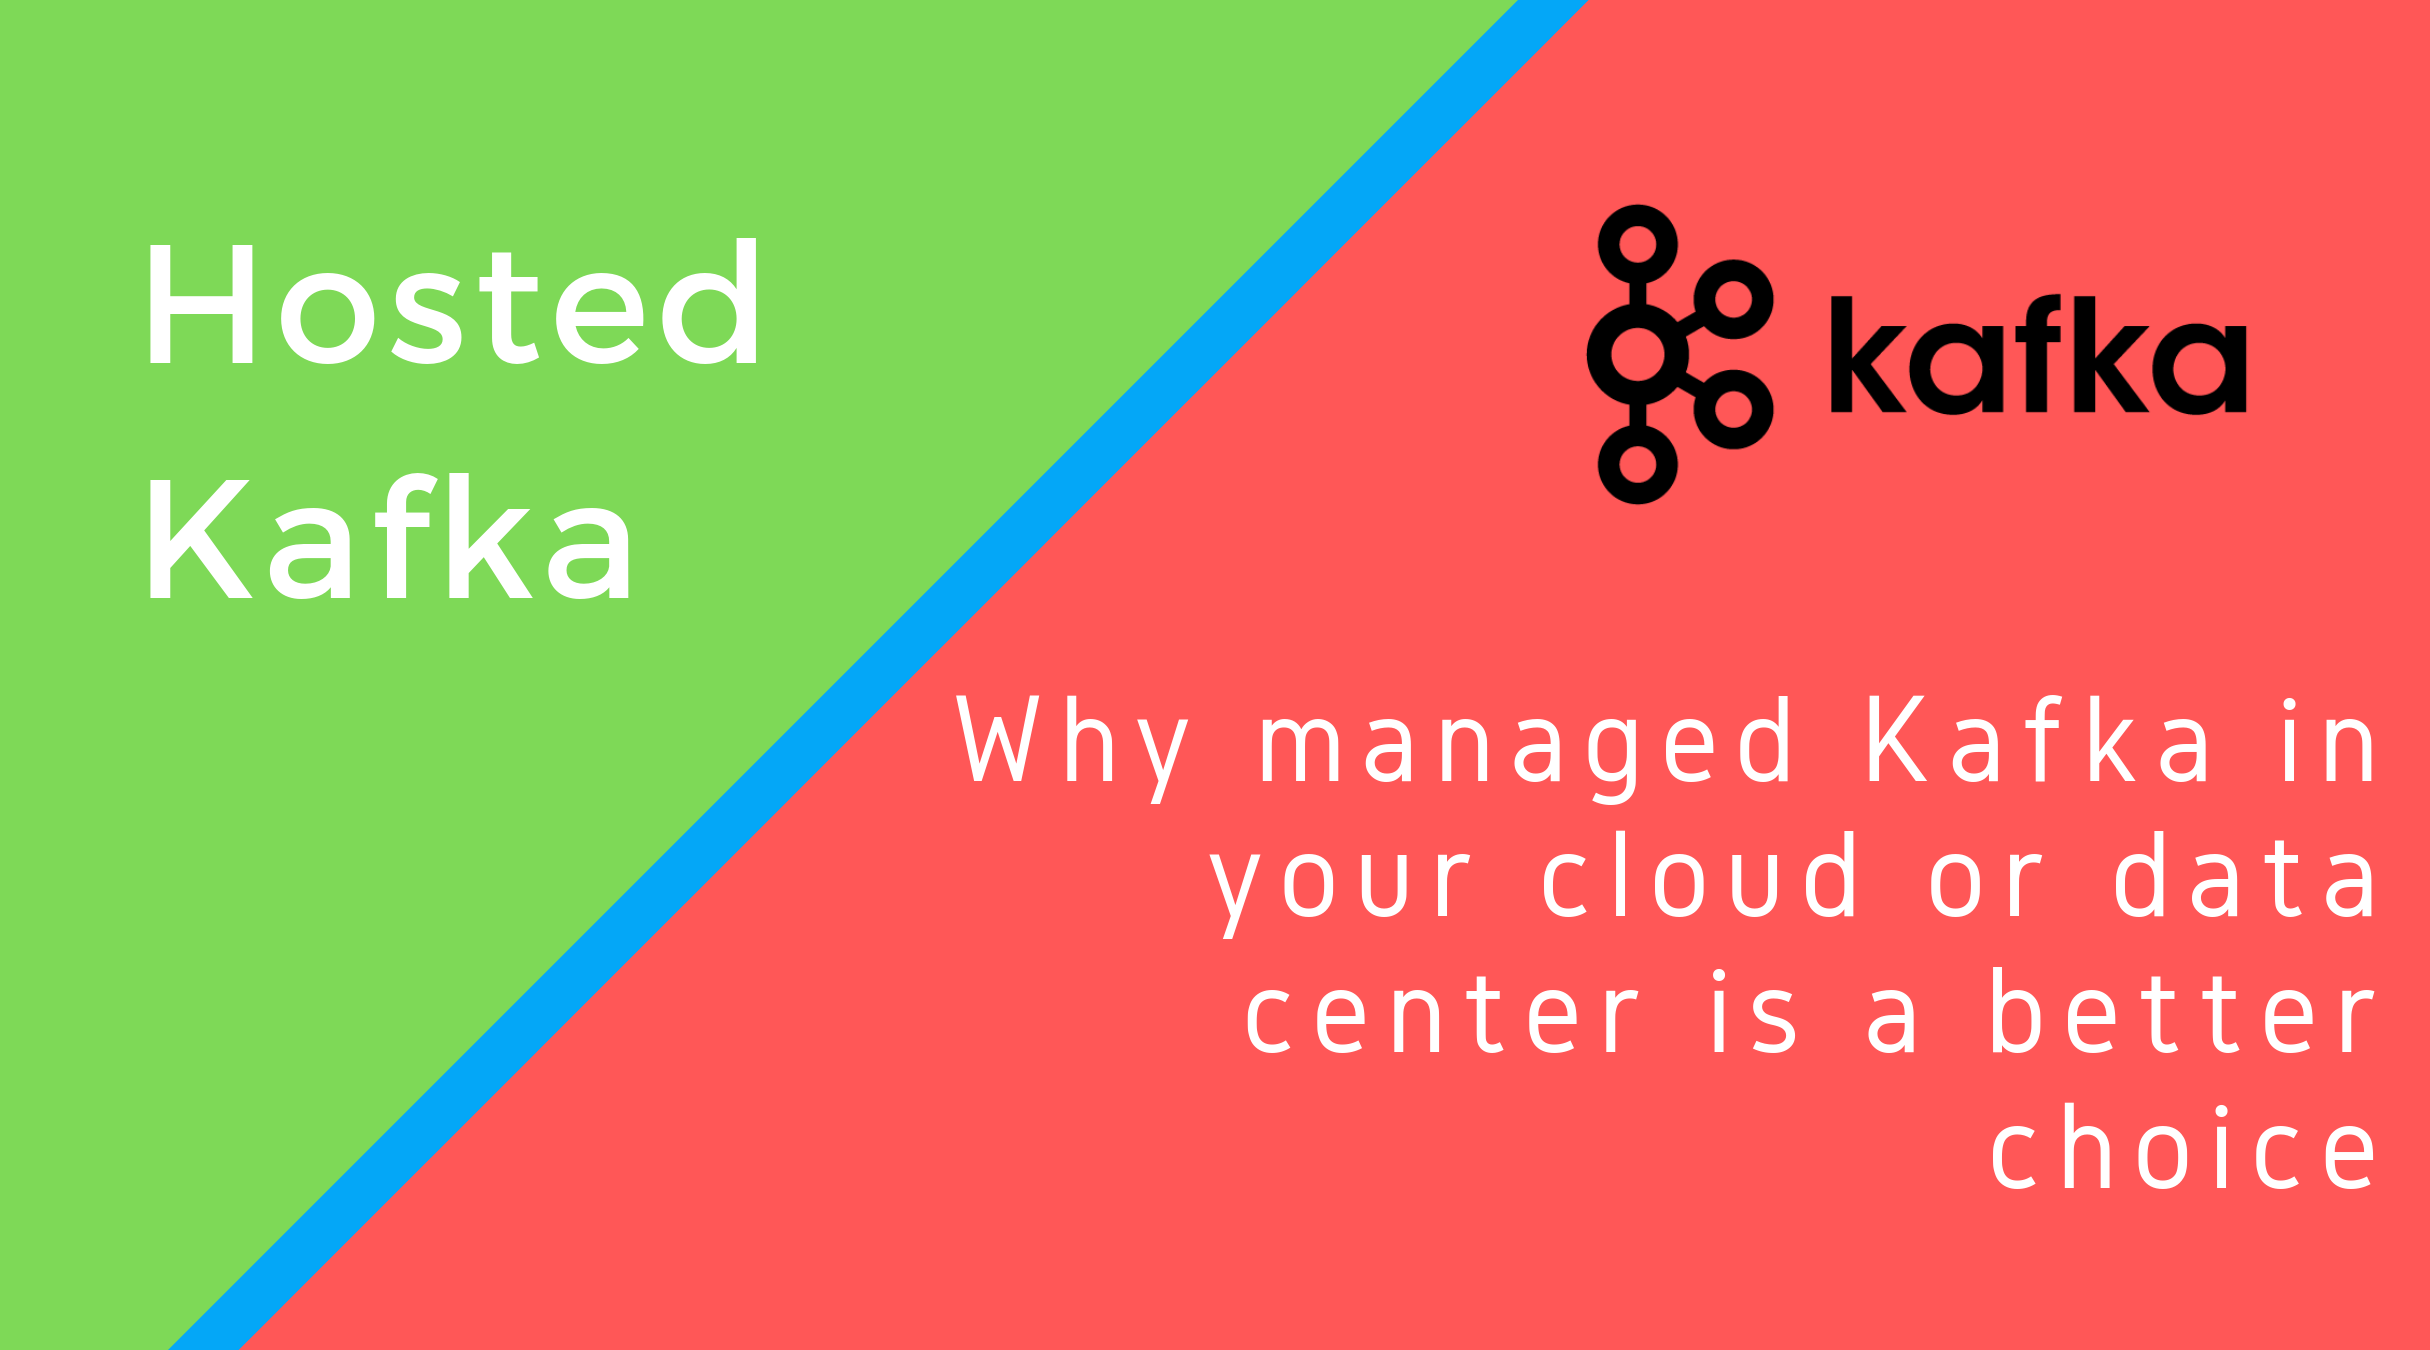 Hosted Kafka:  Why Managed Kafka in Your Cloud or Data center is a Better Choice Than Hosted Kafka